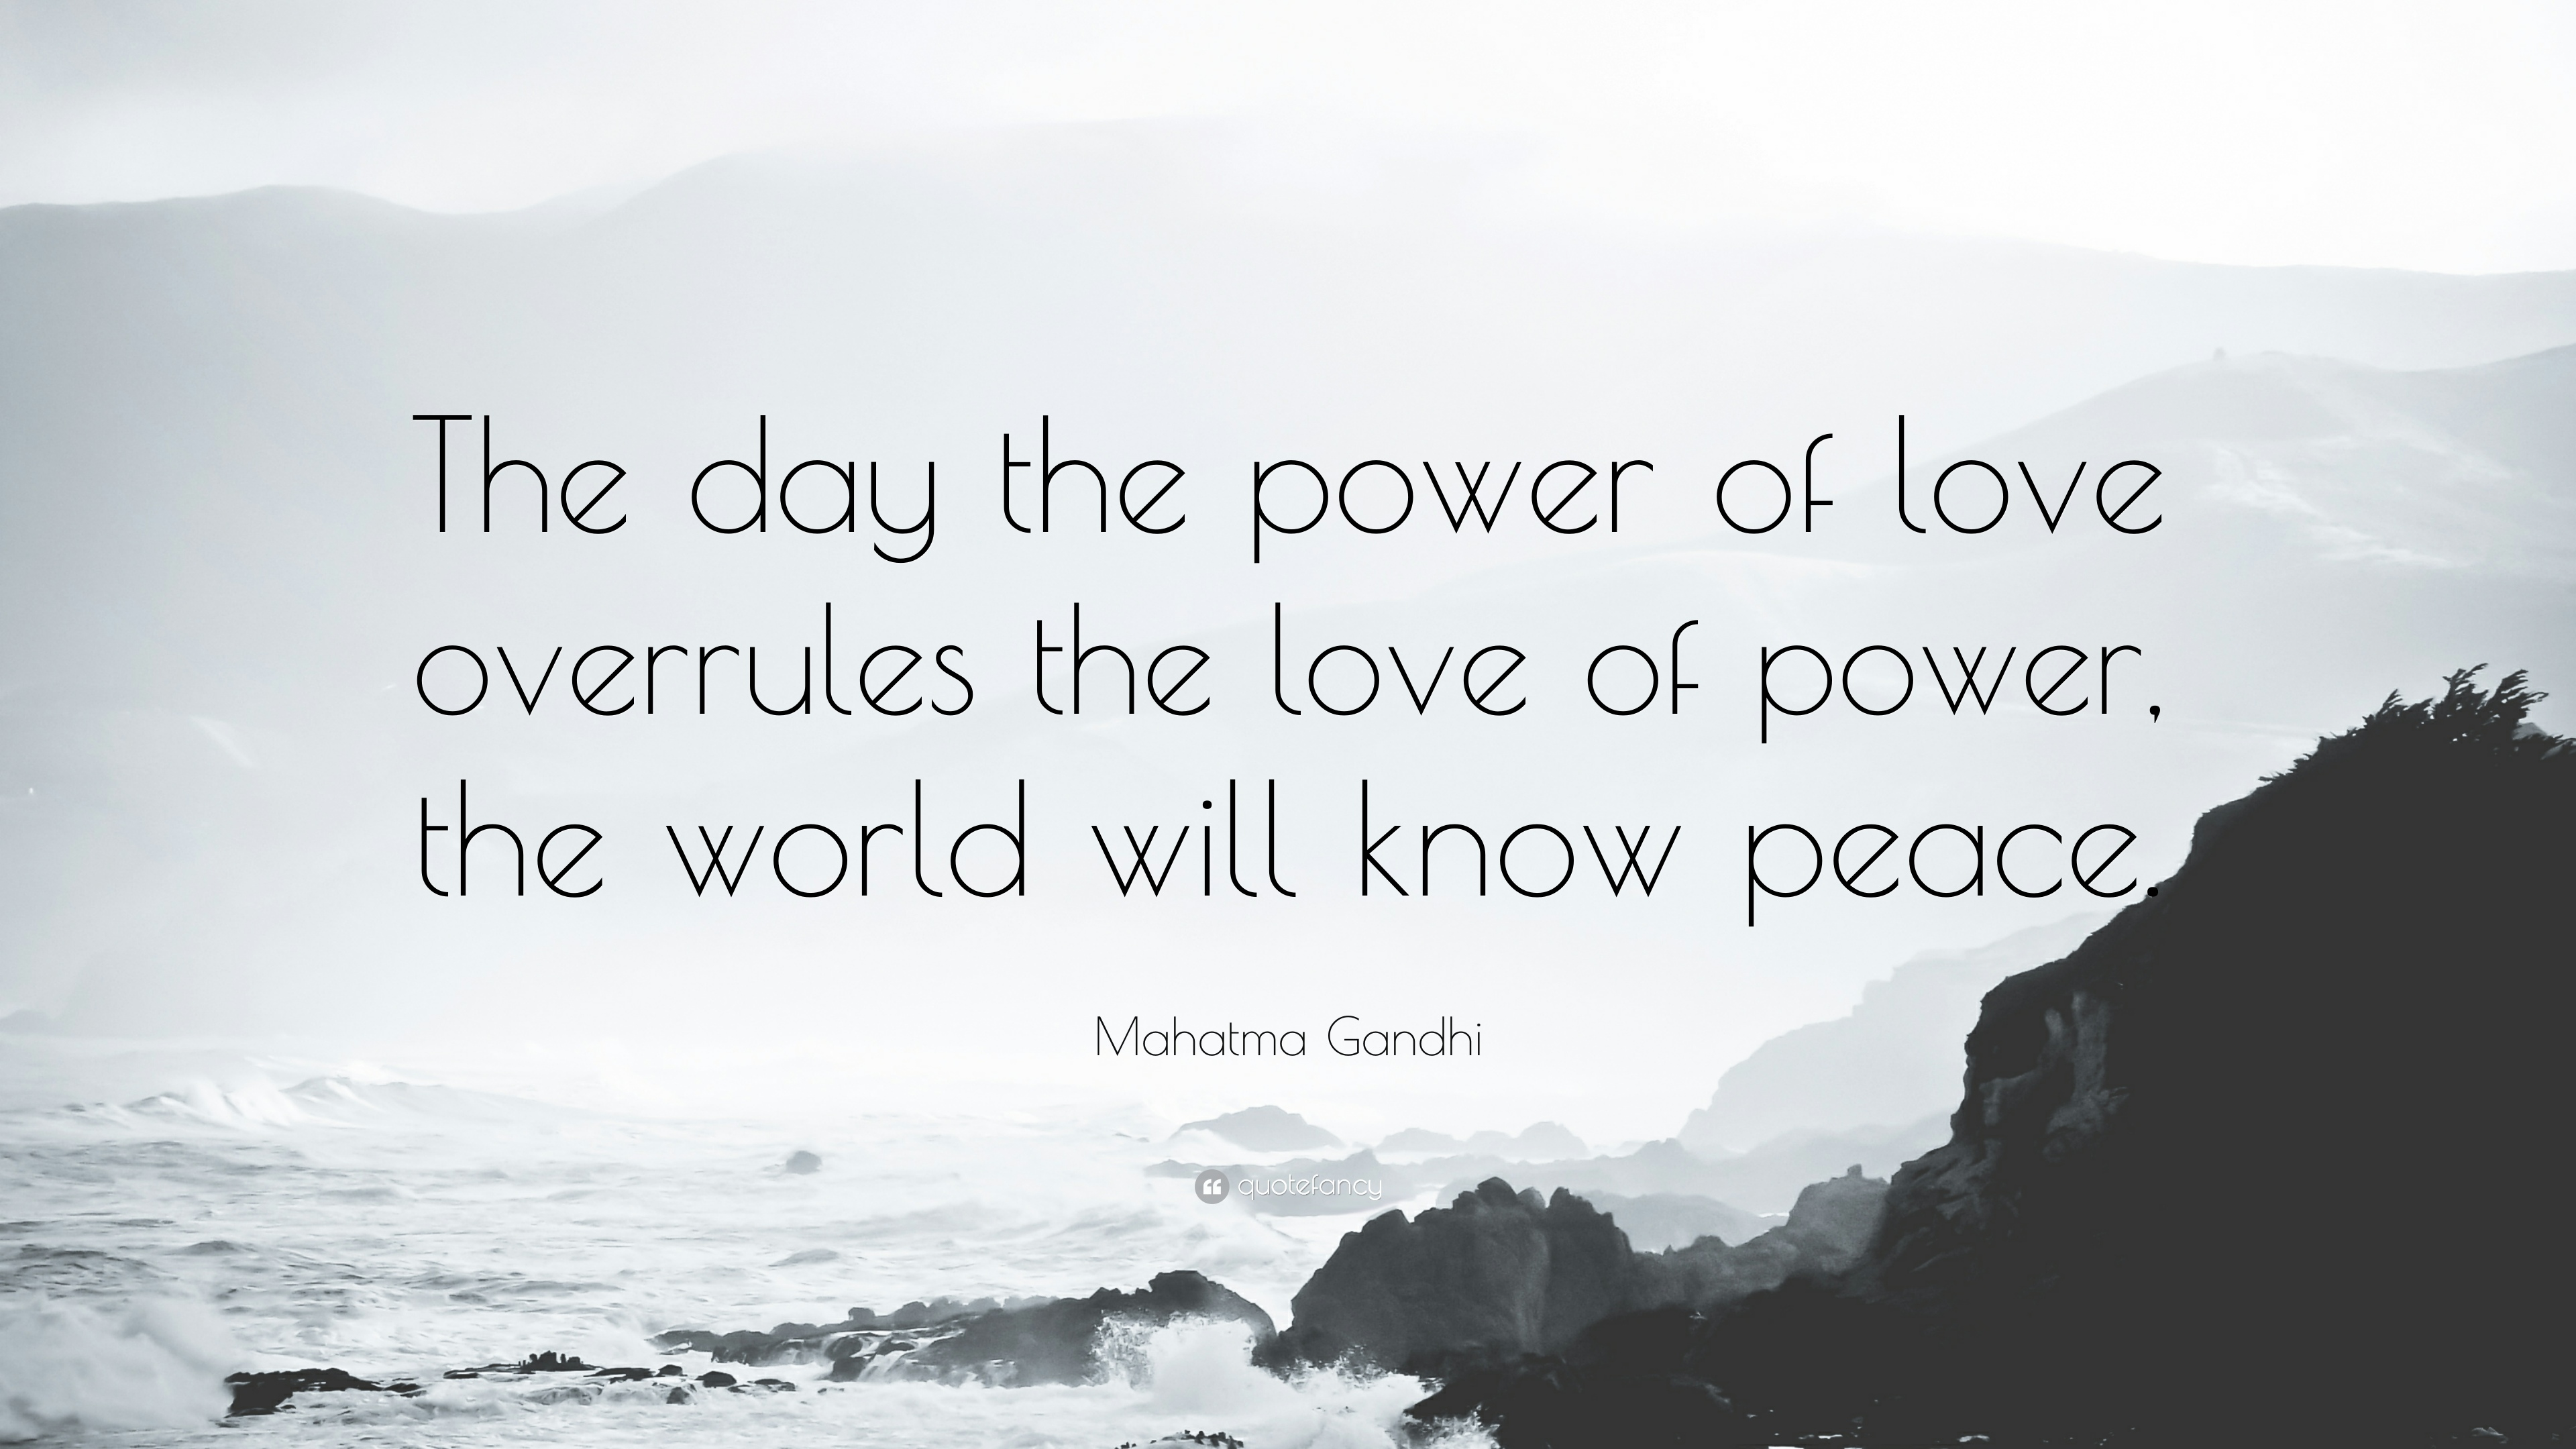 Mahatma Gandhi Quote: U201cThe Day The Power Of Love Overrules The Love Of Power